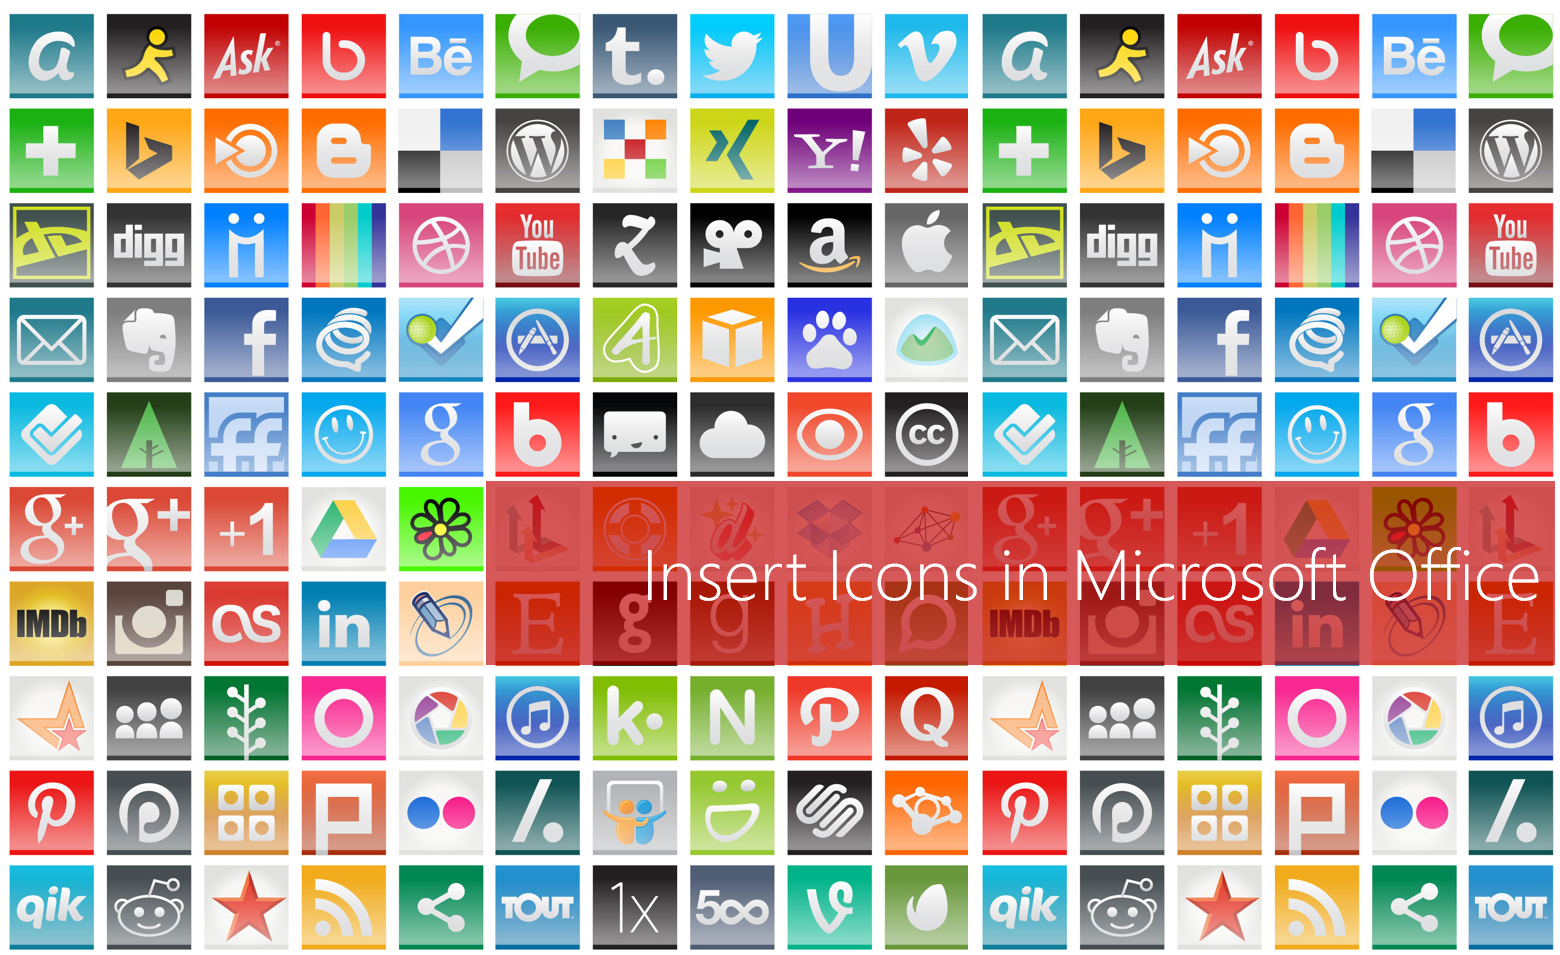 Microsoft 365 Day 38: Insert SVG Icons in Microsoft Office